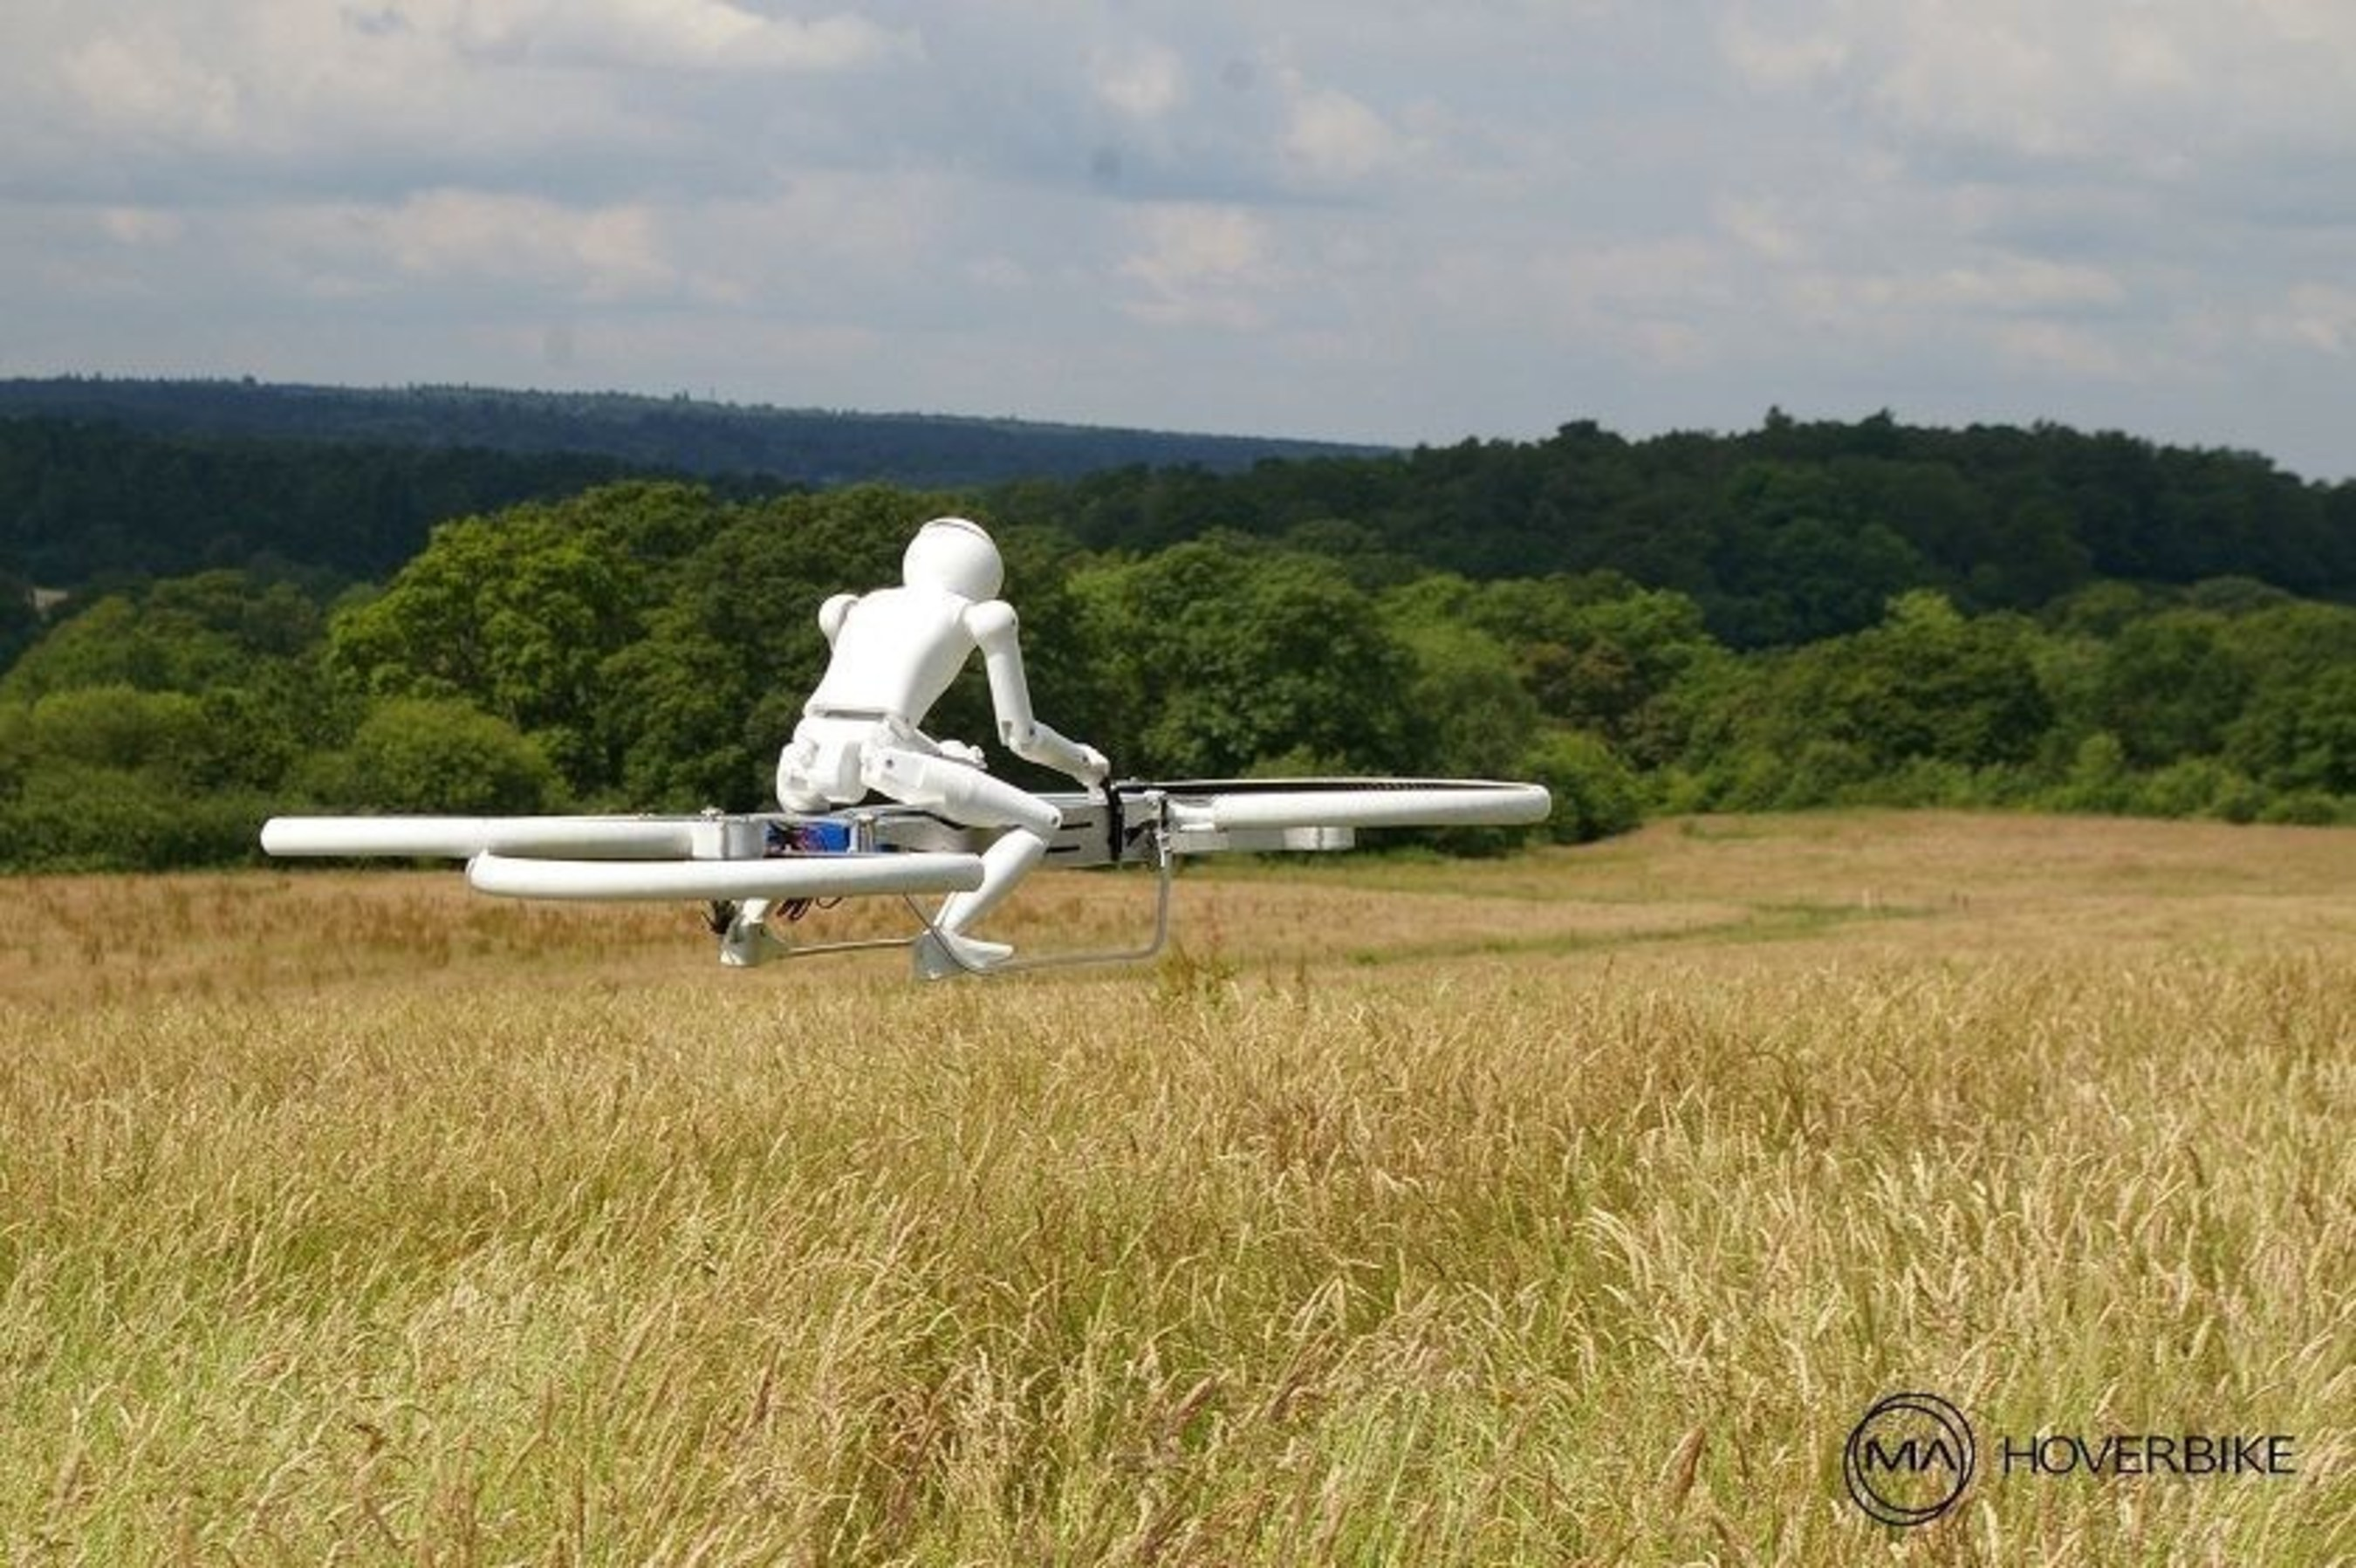 An example of one of the competitions under The world Future Sports Games : Manned Drones Races